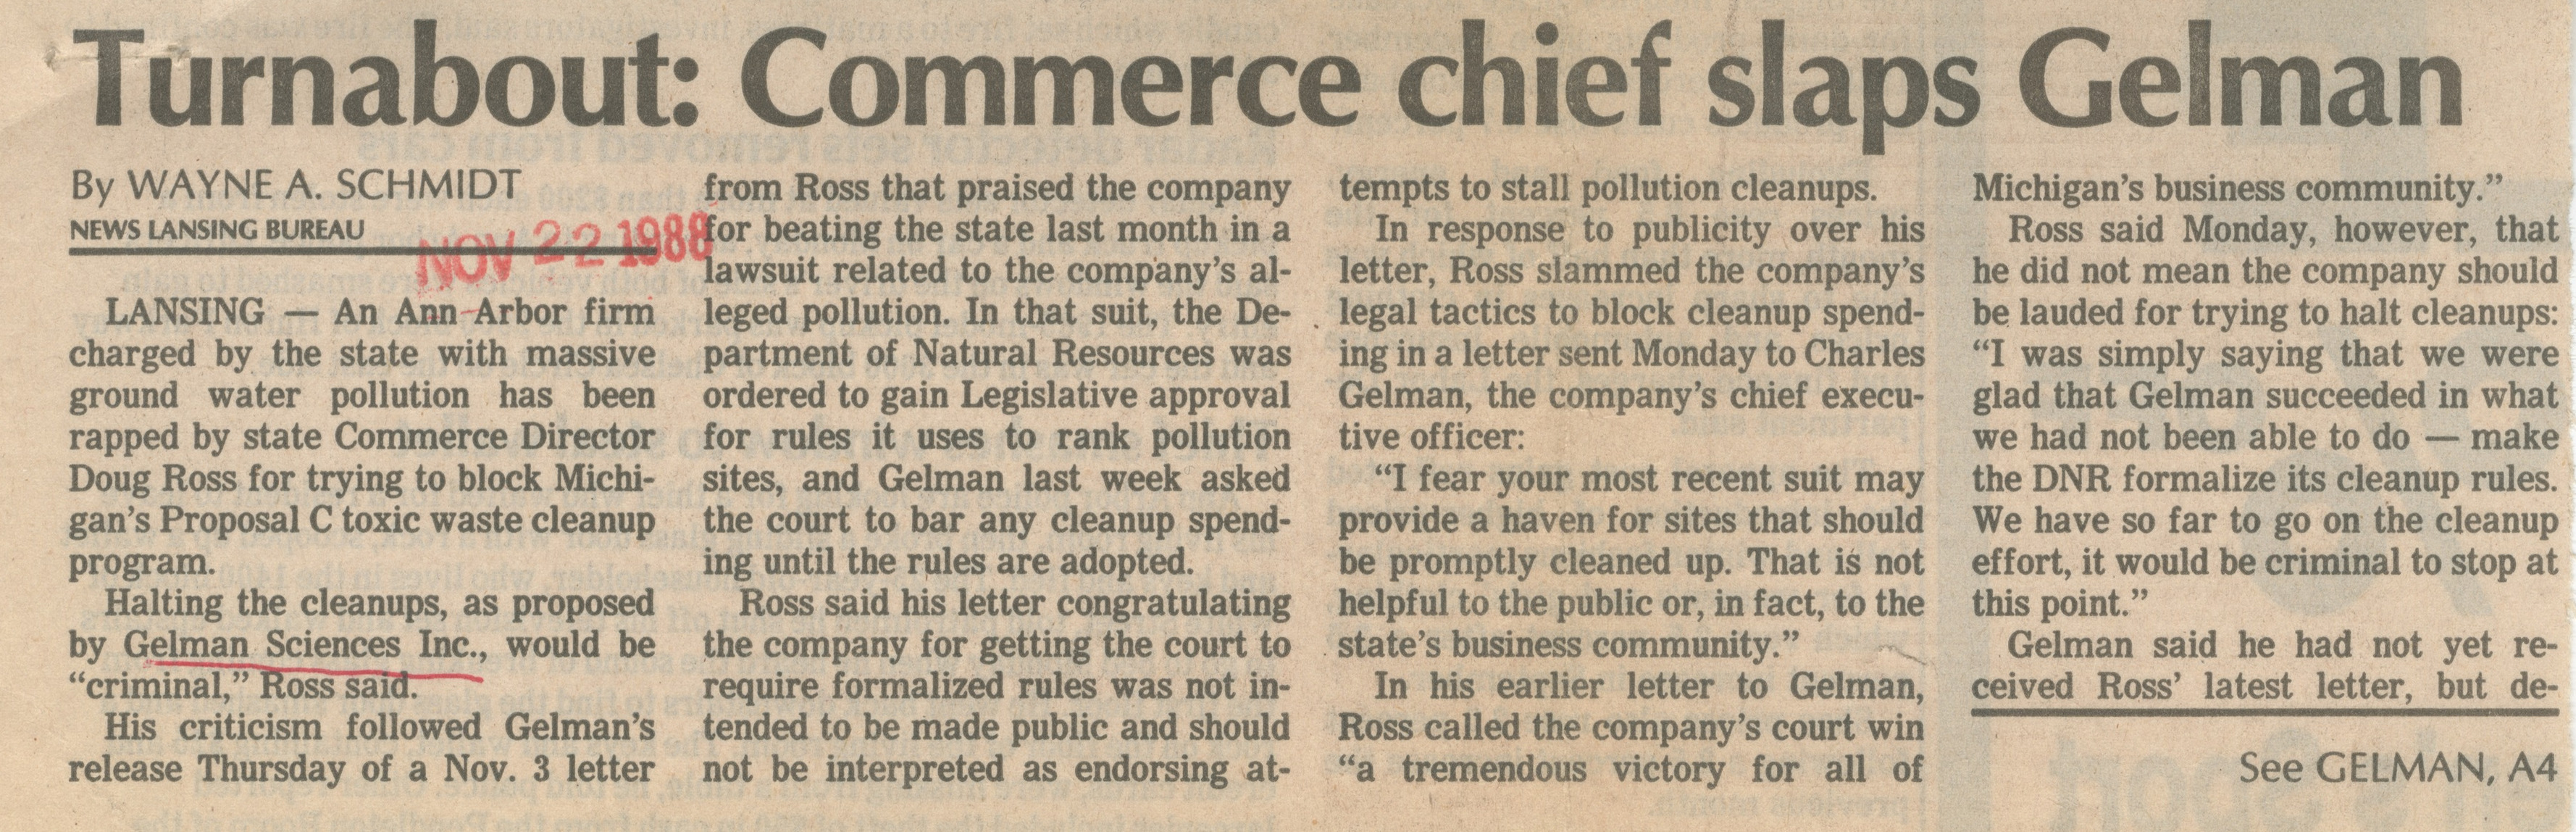 Turnabout: Commerce Chief Slaps Gelman image